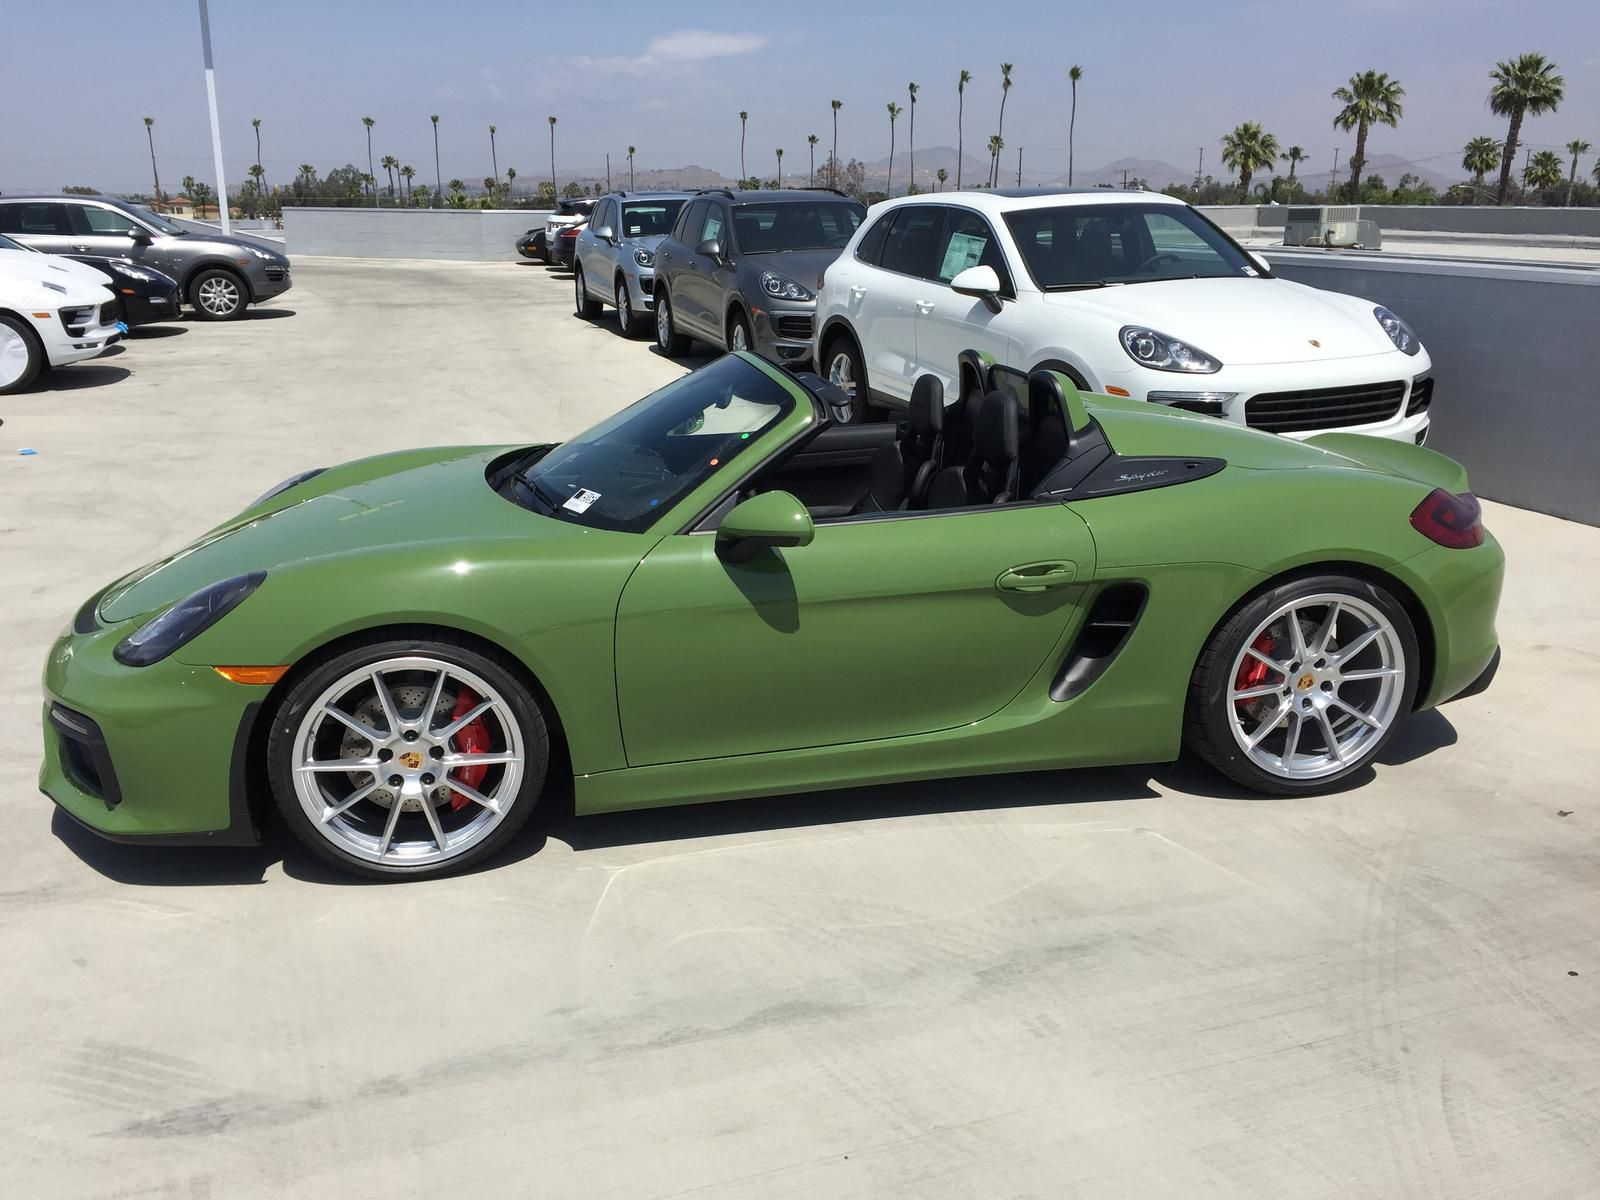 New pts olive green arrived rennlist discussion forums boxster spyderporsche